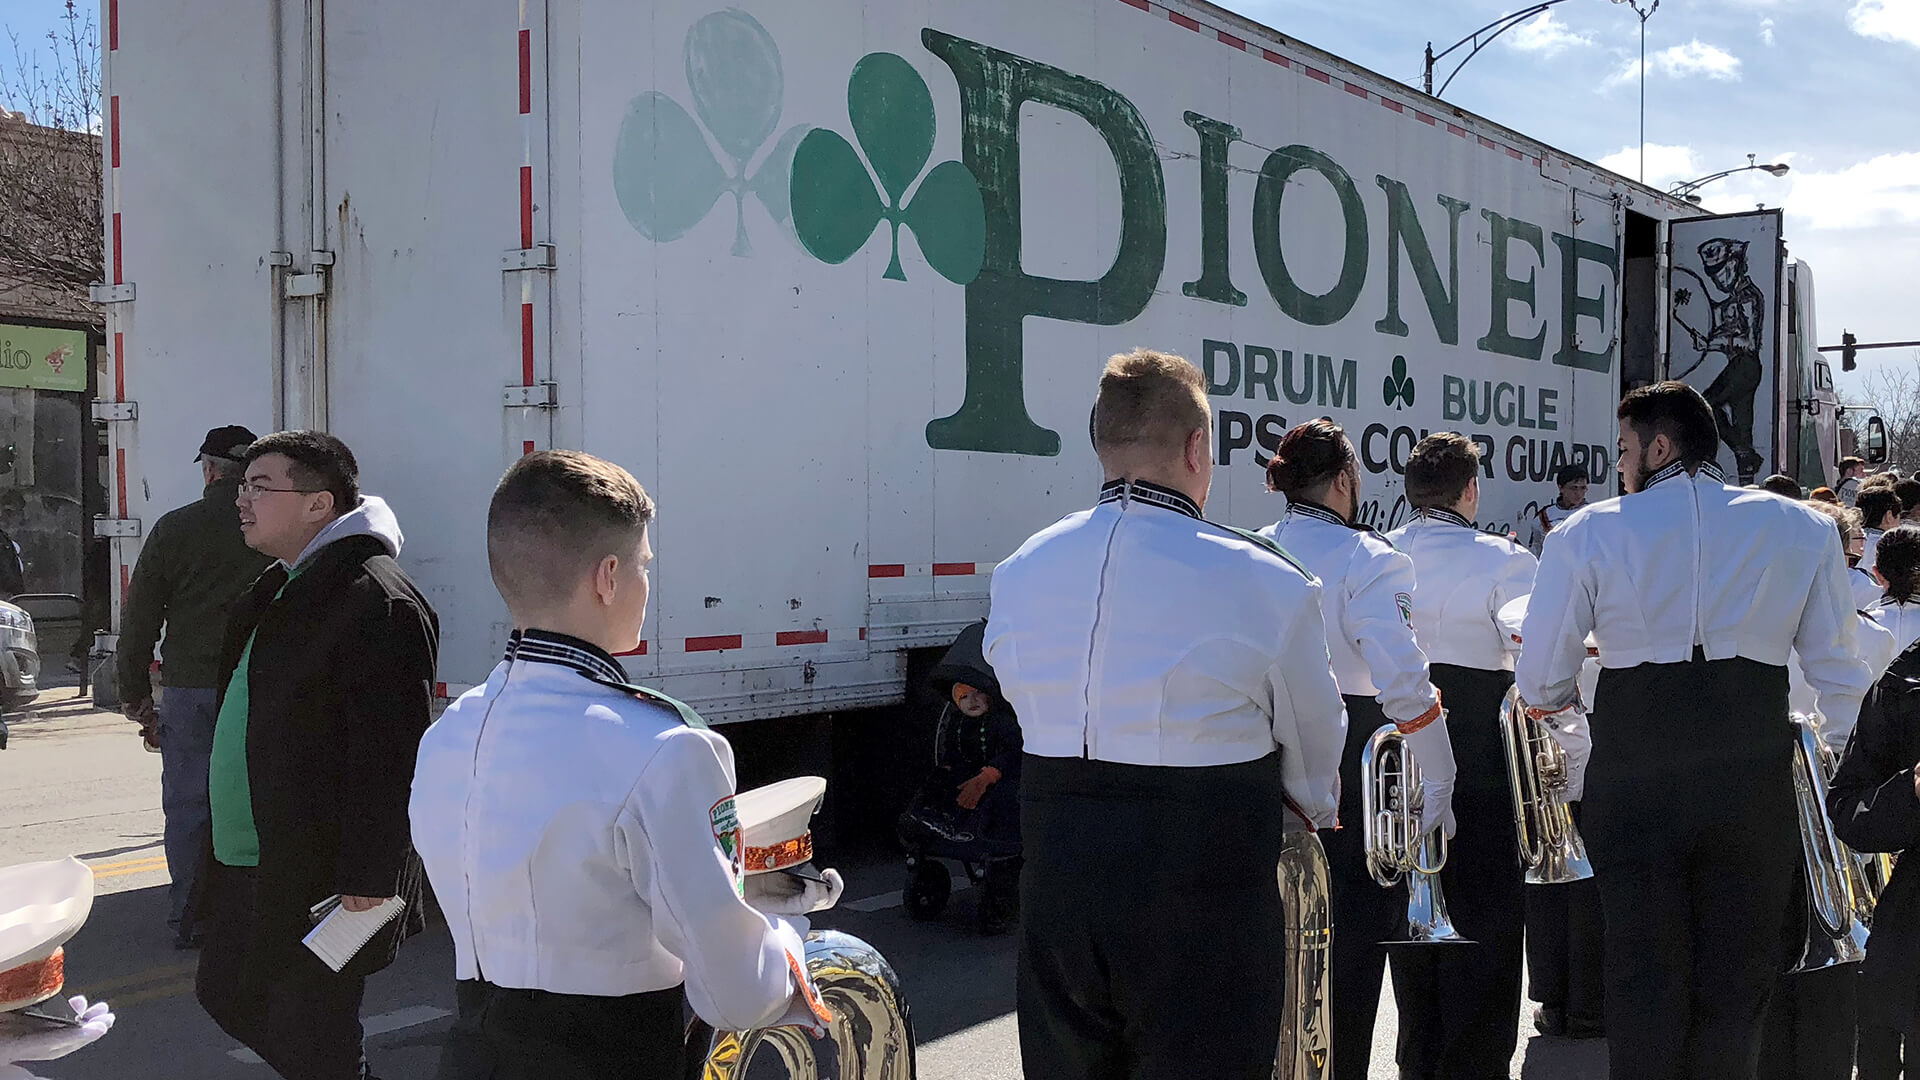 Pioneer brings its Irish flair to one of Chicago's most popular St. Patrick's events